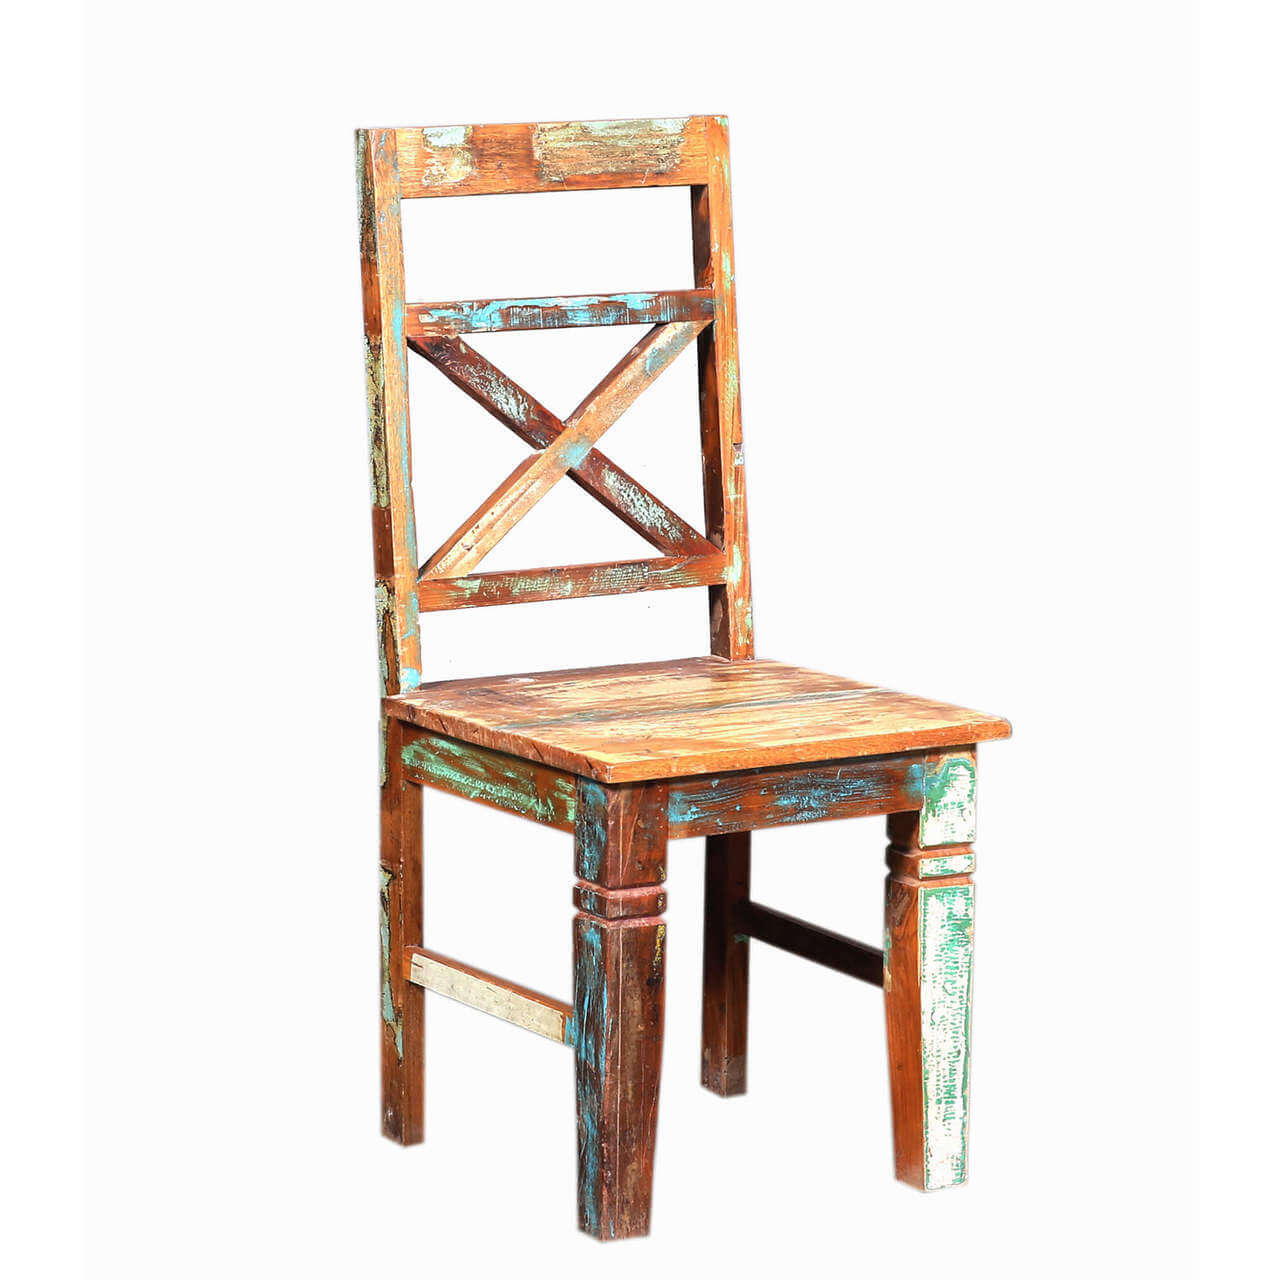 Natick Handcrafted Classic X Back Reclaimed Wood Dining Chair